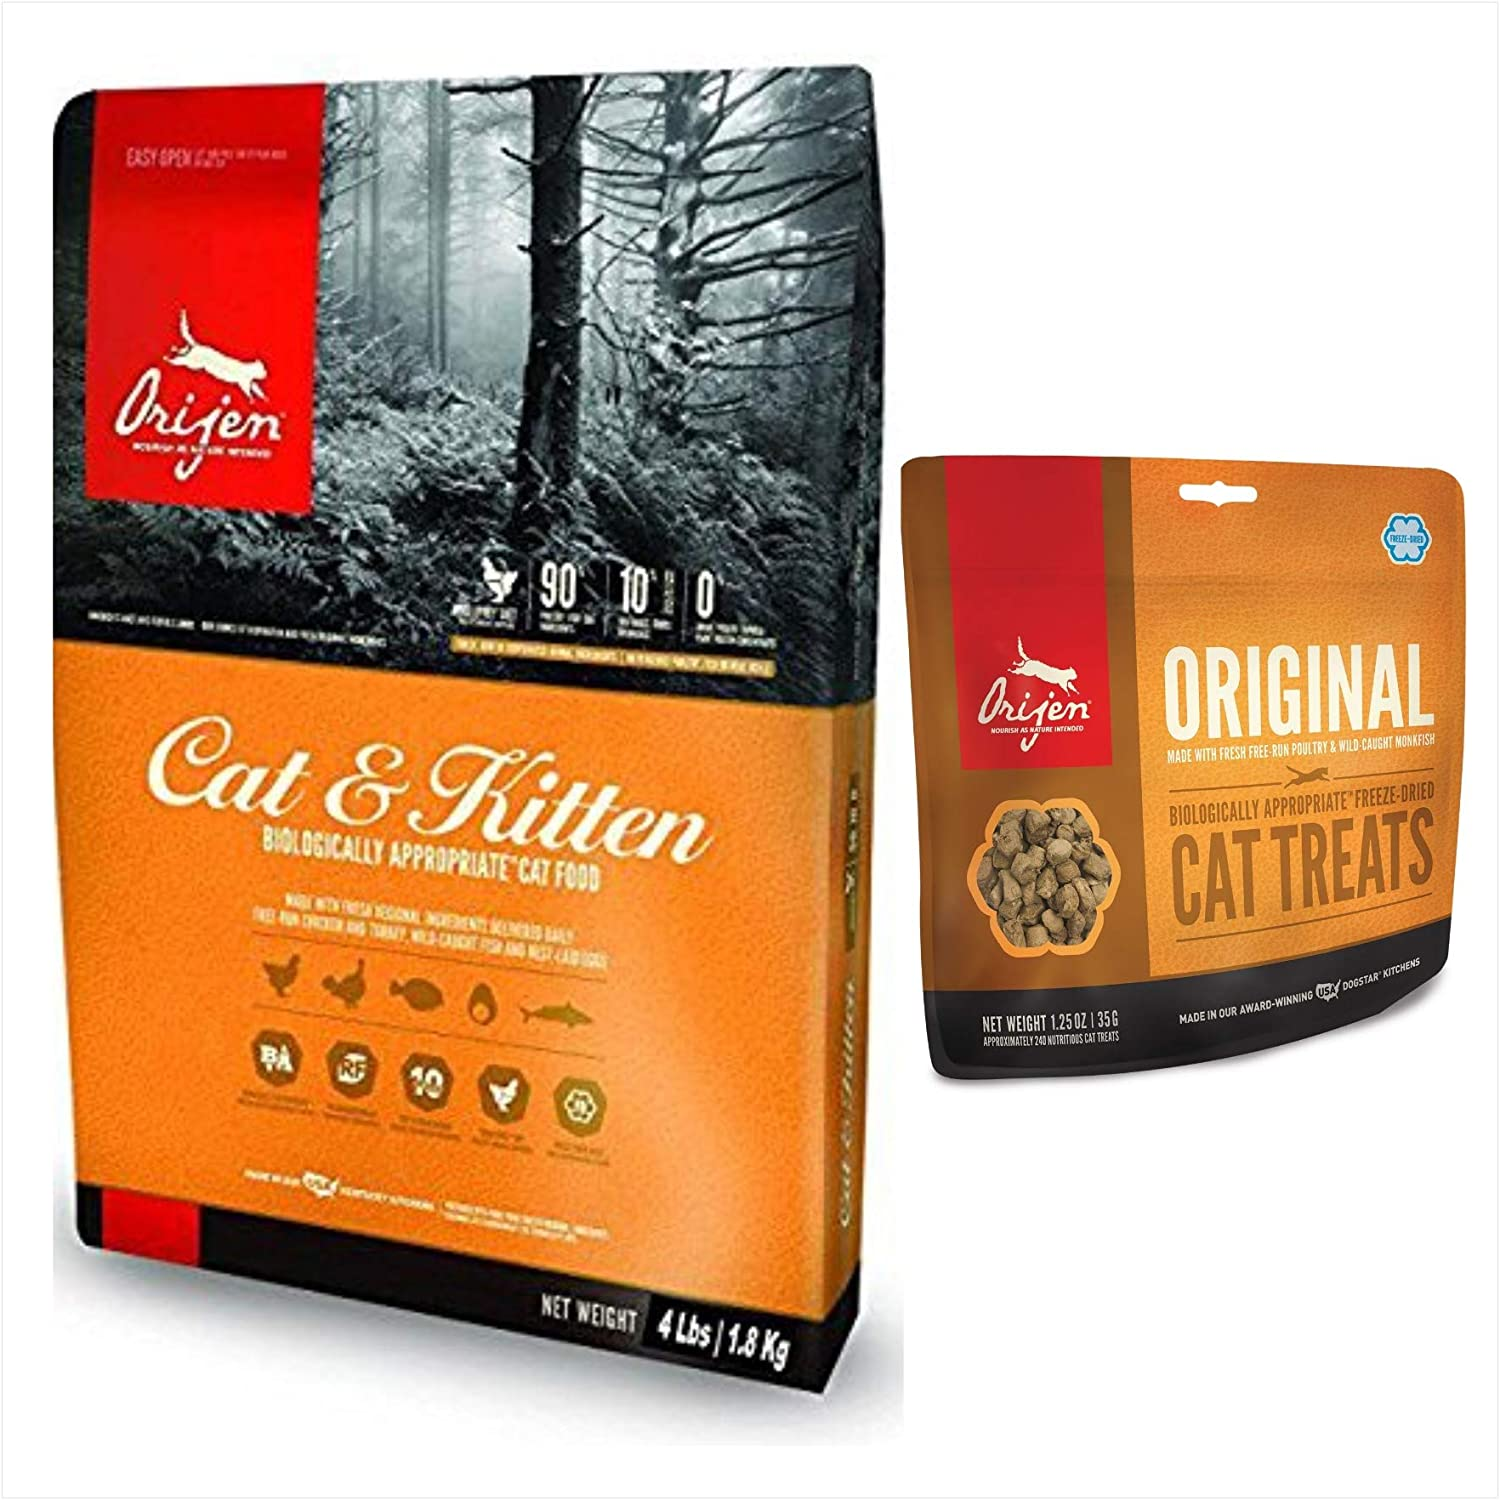 Orijen Cat and Kitten Food 4 Pound Bag. Biologically Appropriate Cat Food and 1 Original Cat Treat 1.25 Ounce